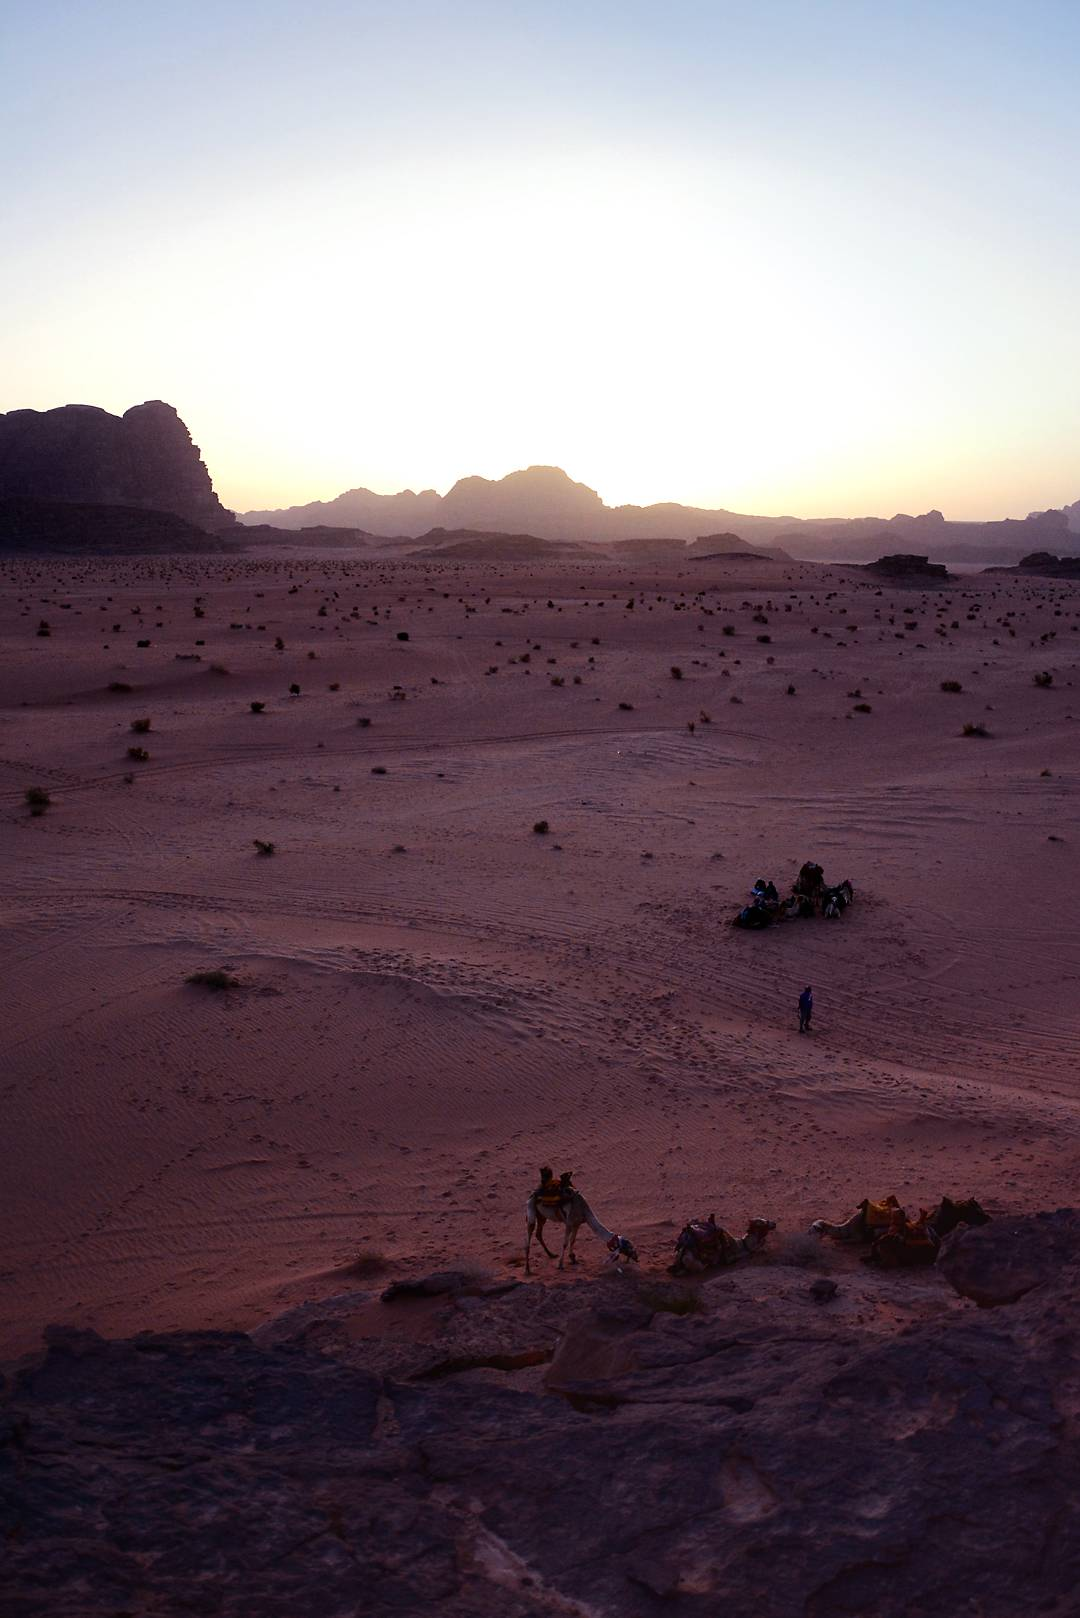 Views of Jordan, Wadi Rum, deser sunset, jordan camel ride - justlikesushi.com